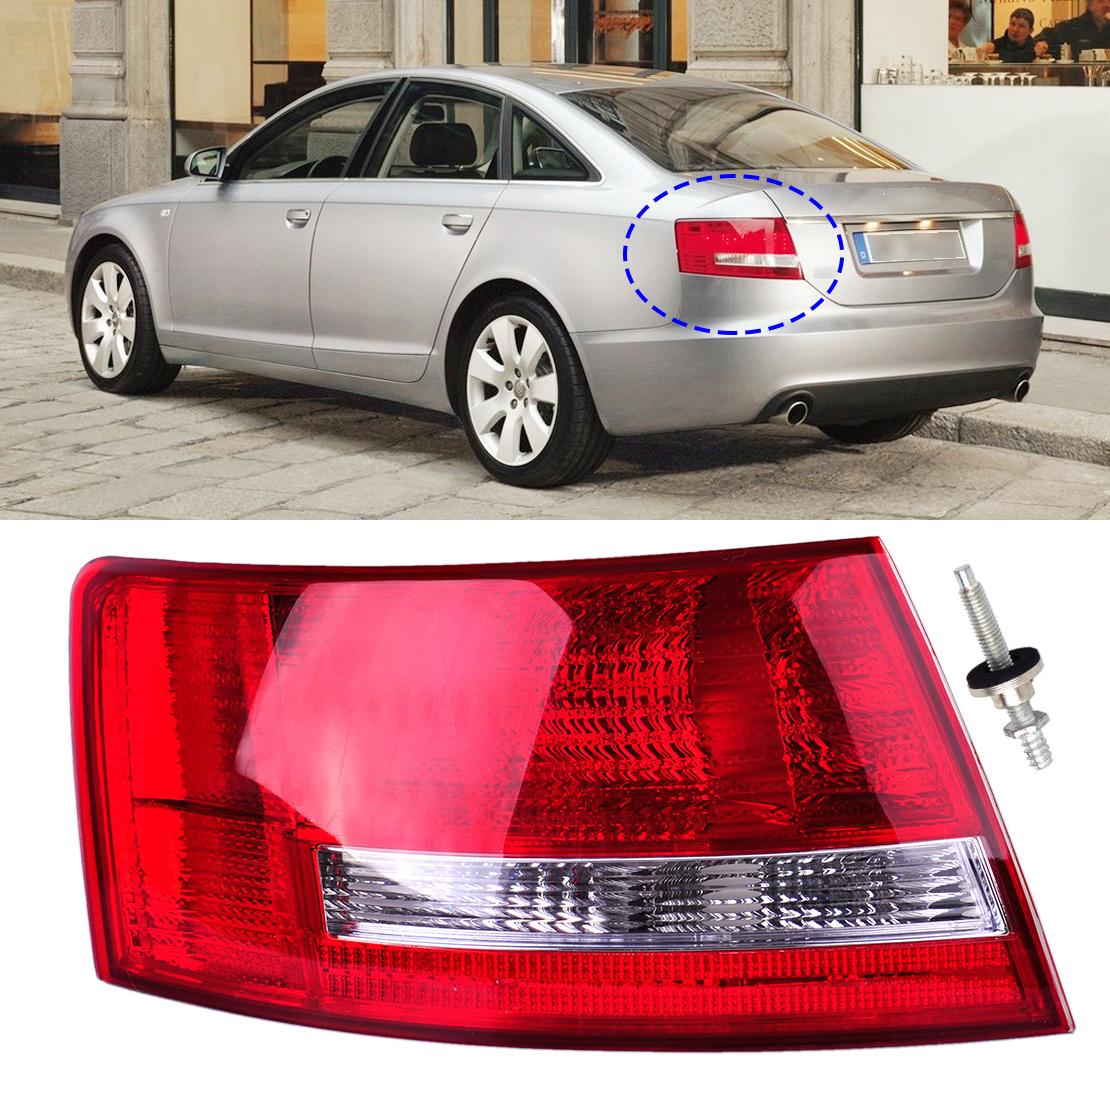 Left Tail Light Assembly Lamp Housing without Bulb fit for Audi A6 /A6 Quattro Sedan 2005 2006 2007 2008 4F5945095L 4F5945095D free shipping for skoda octavia sedan a5 2005 2006 2007 2008 left side rear lamp tail light